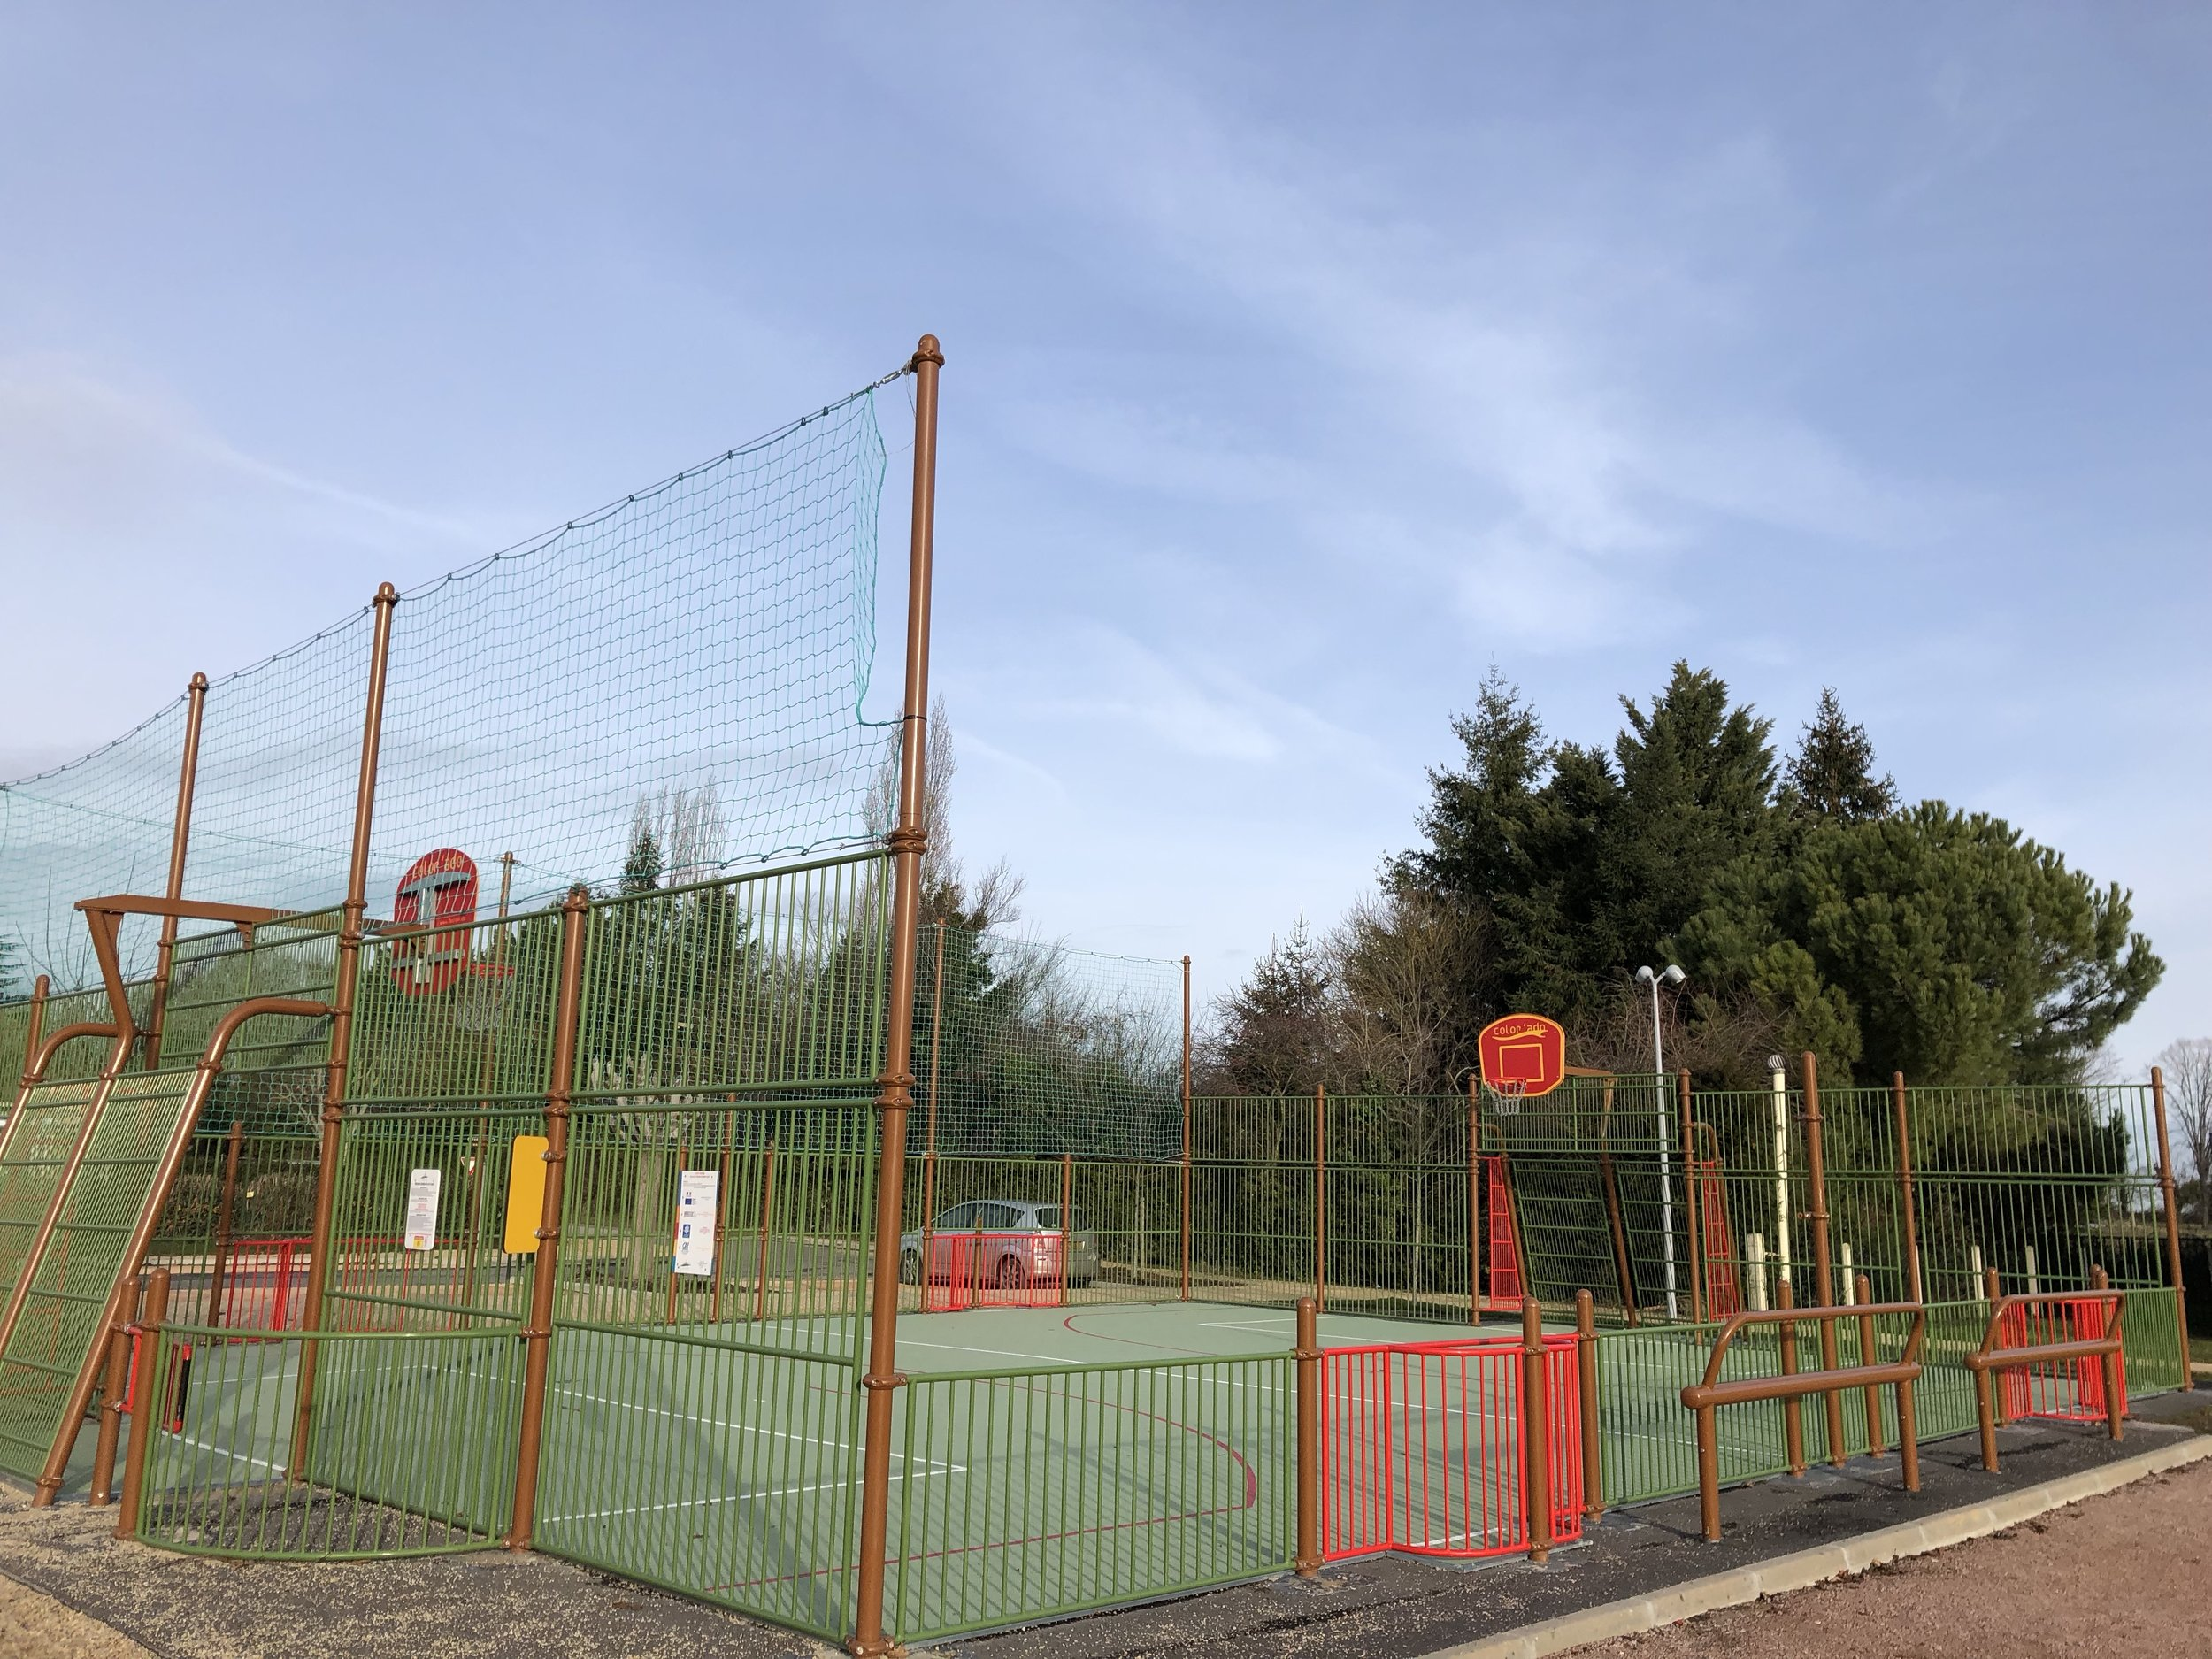 In our village Bayet, directly next to our parc, is a communal kids play and sports area: easy acces, brand new, safe, i't's a great playground!